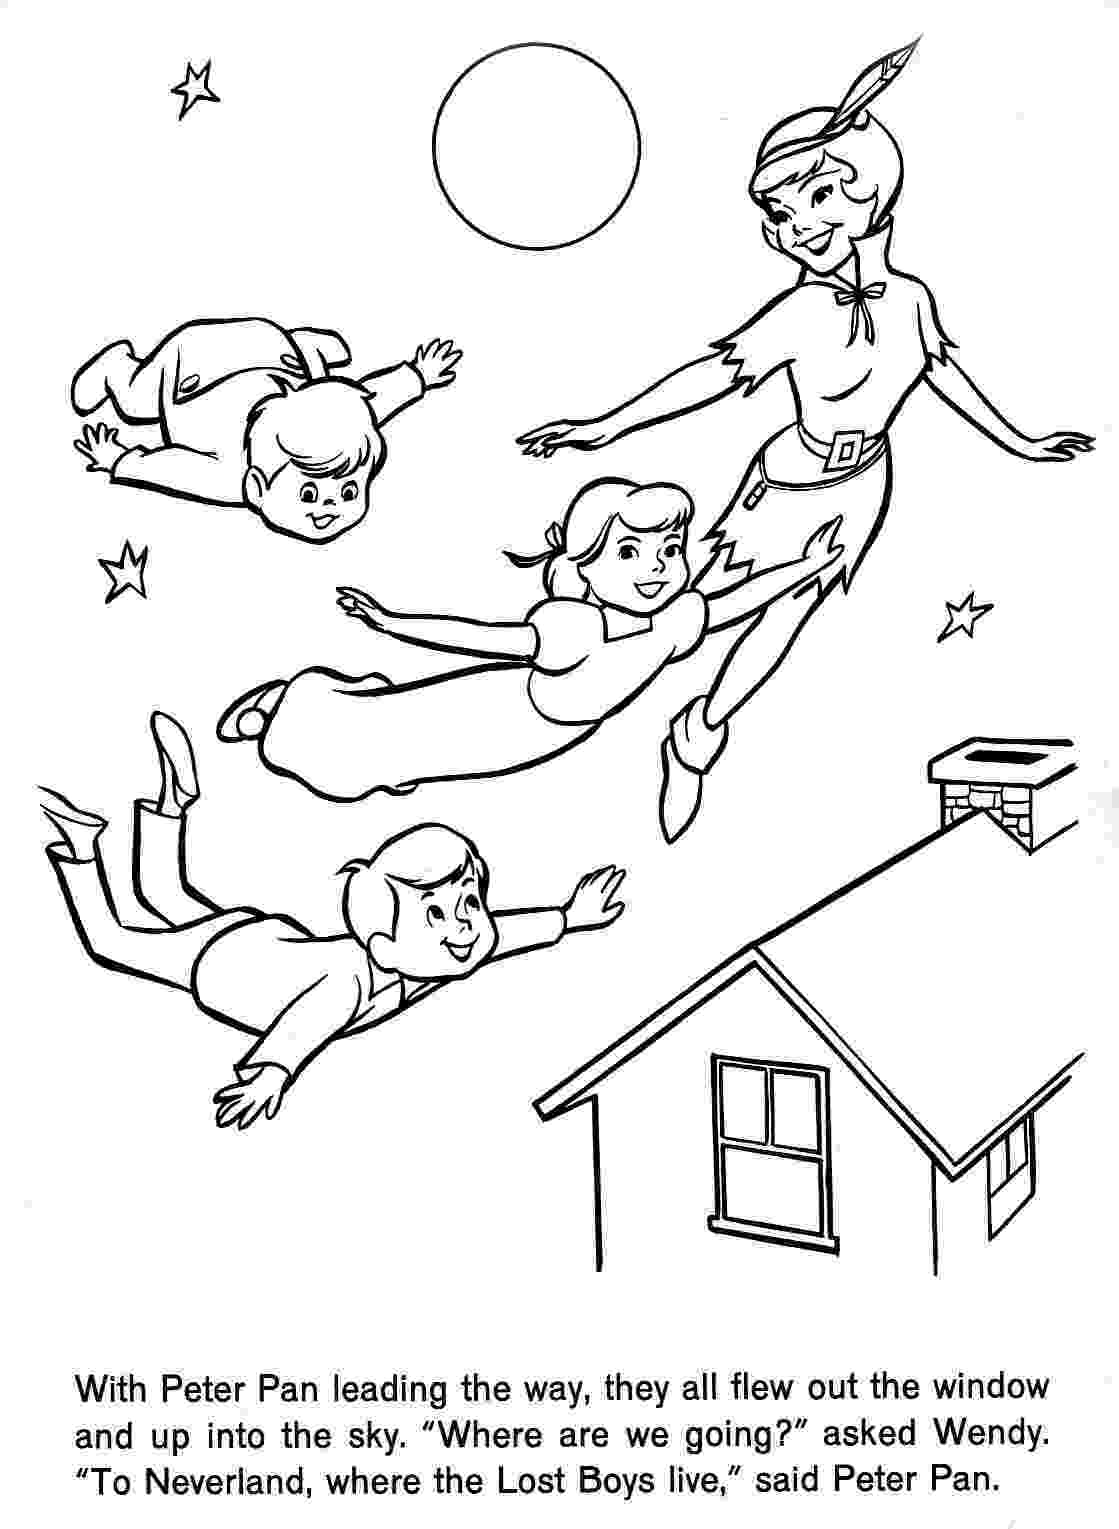 peter pan coloring pages peter pan coloring book notes from pellucidar scroll down coloring pan pages peter